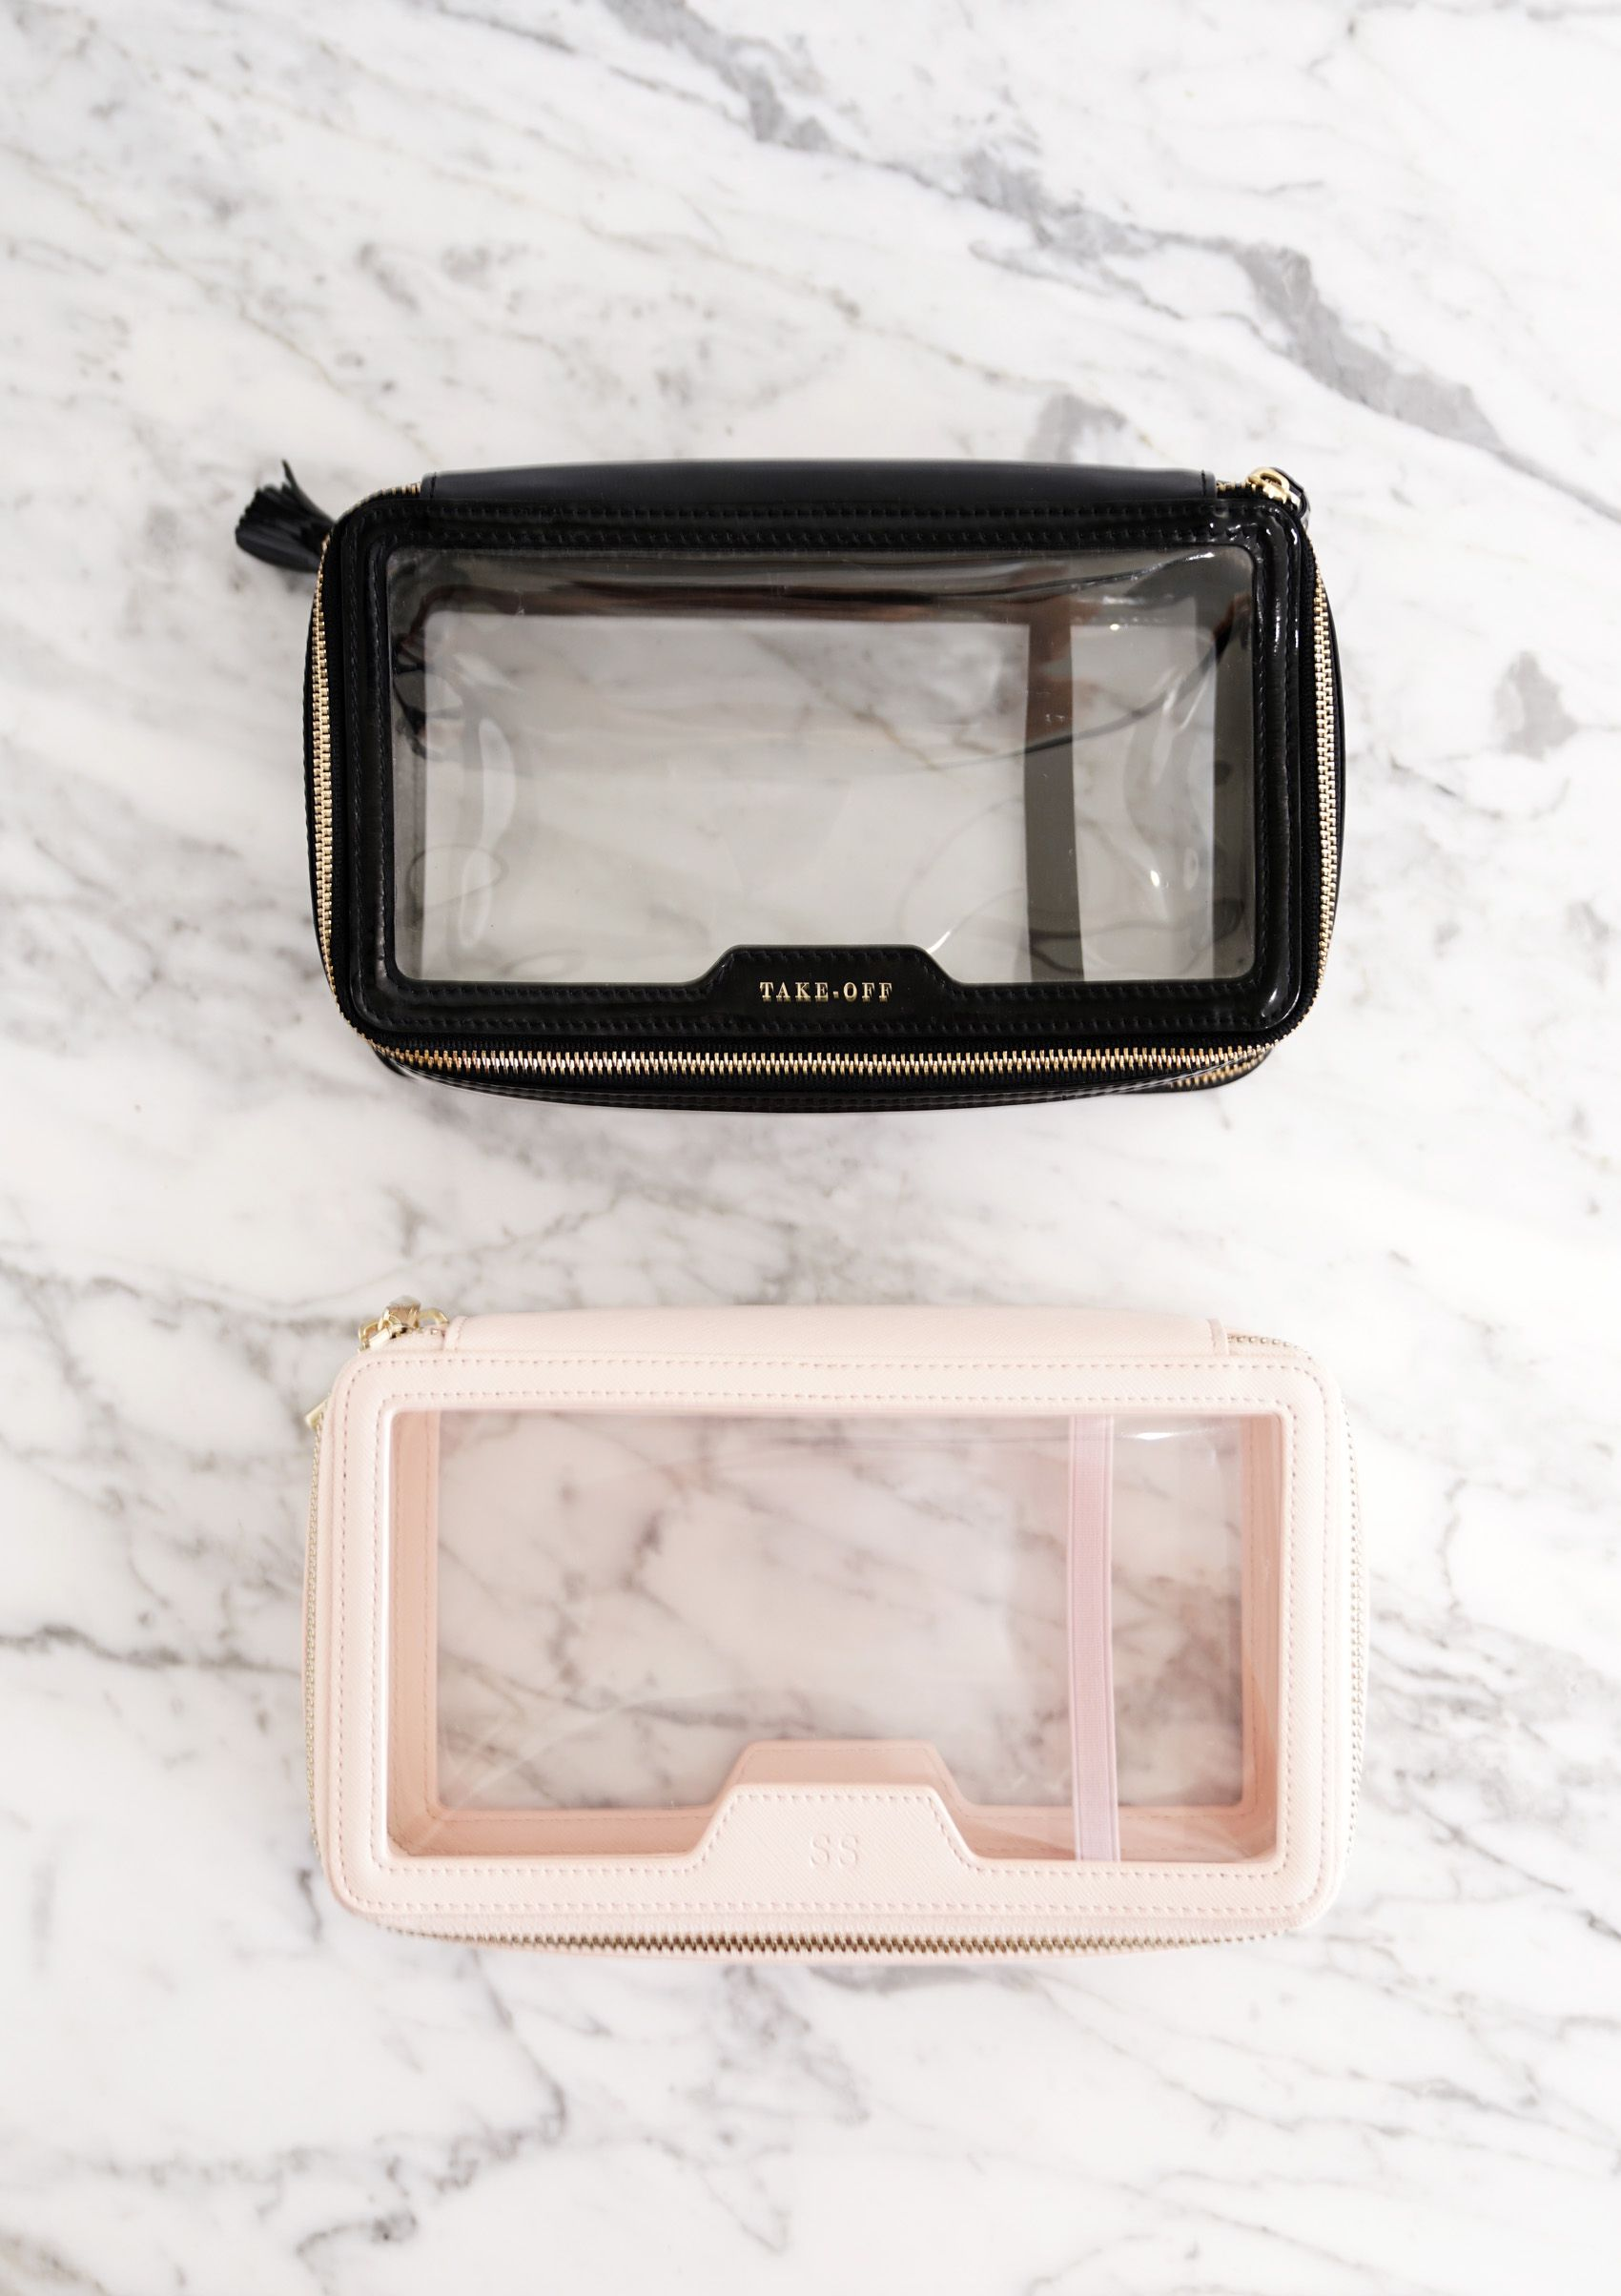 3c5618db9ca8 The Daily Edited Transparent Cosmetic Case vs Anya Hindmarch Inflight  Travel Case | The Beauty Look Book